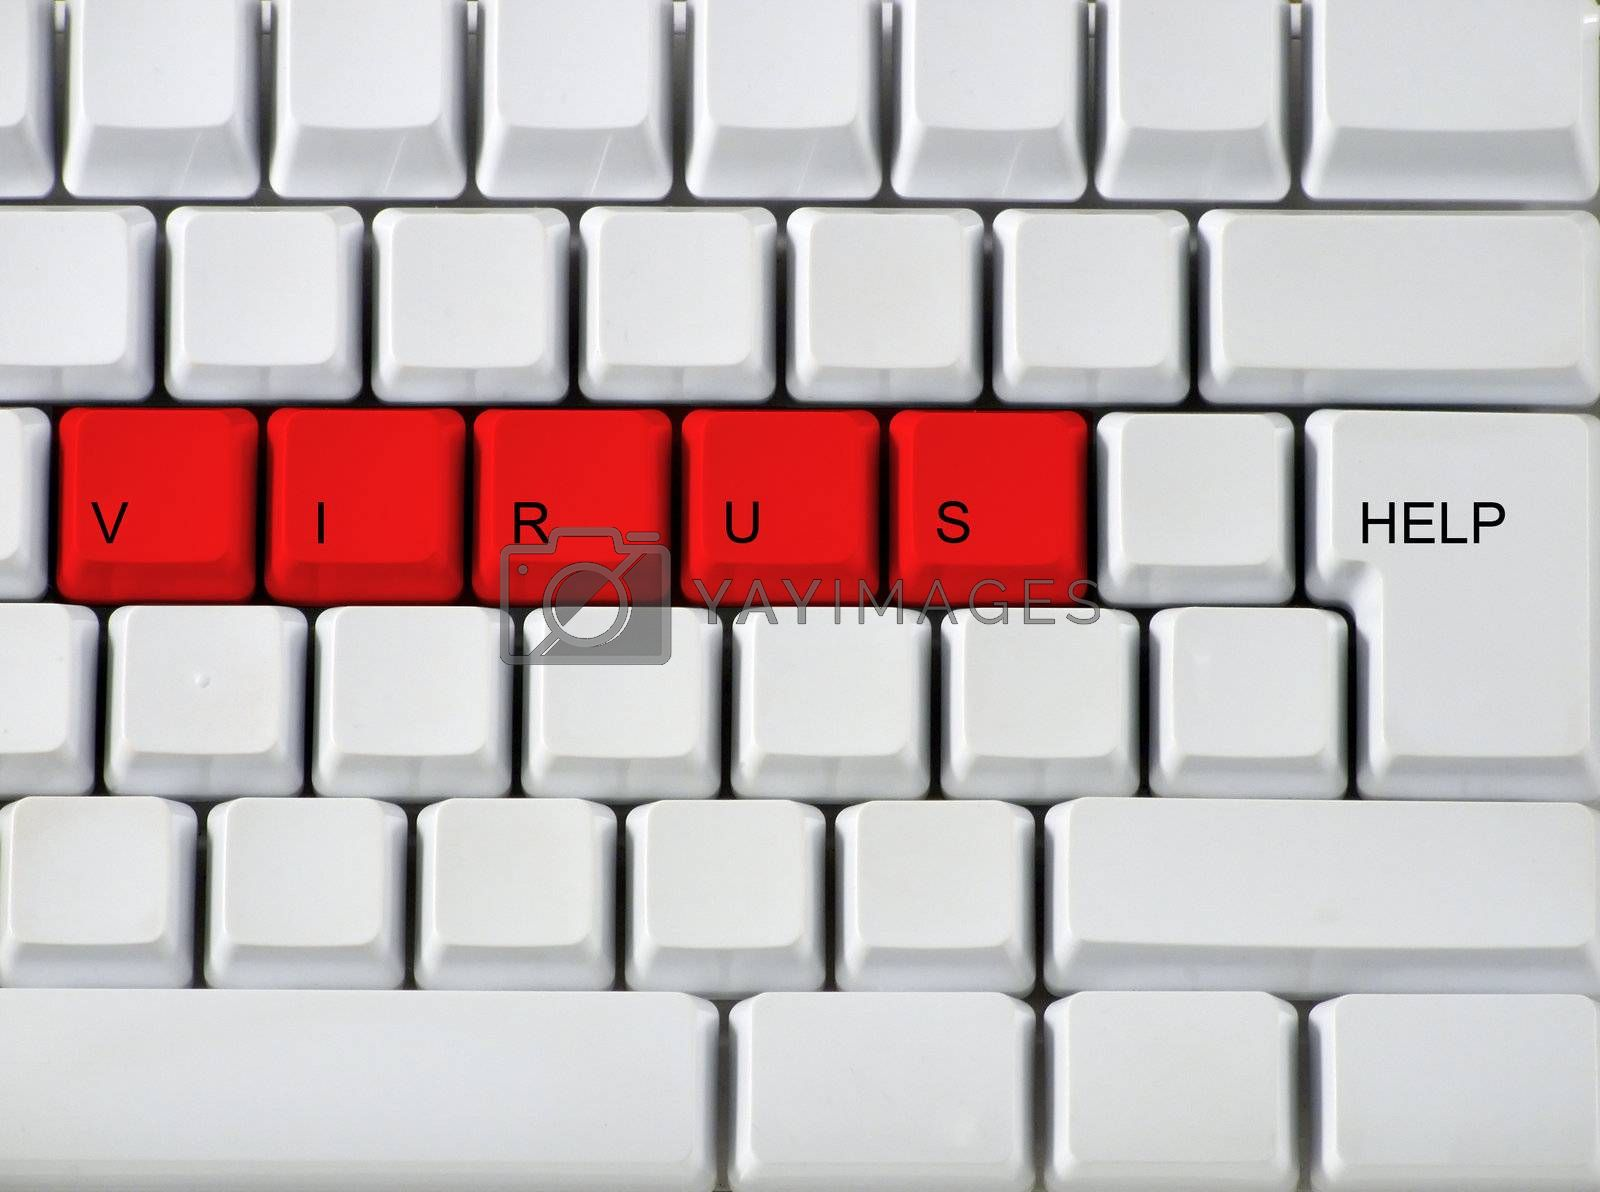 Concept from the virus on a keyboard by PauloResende